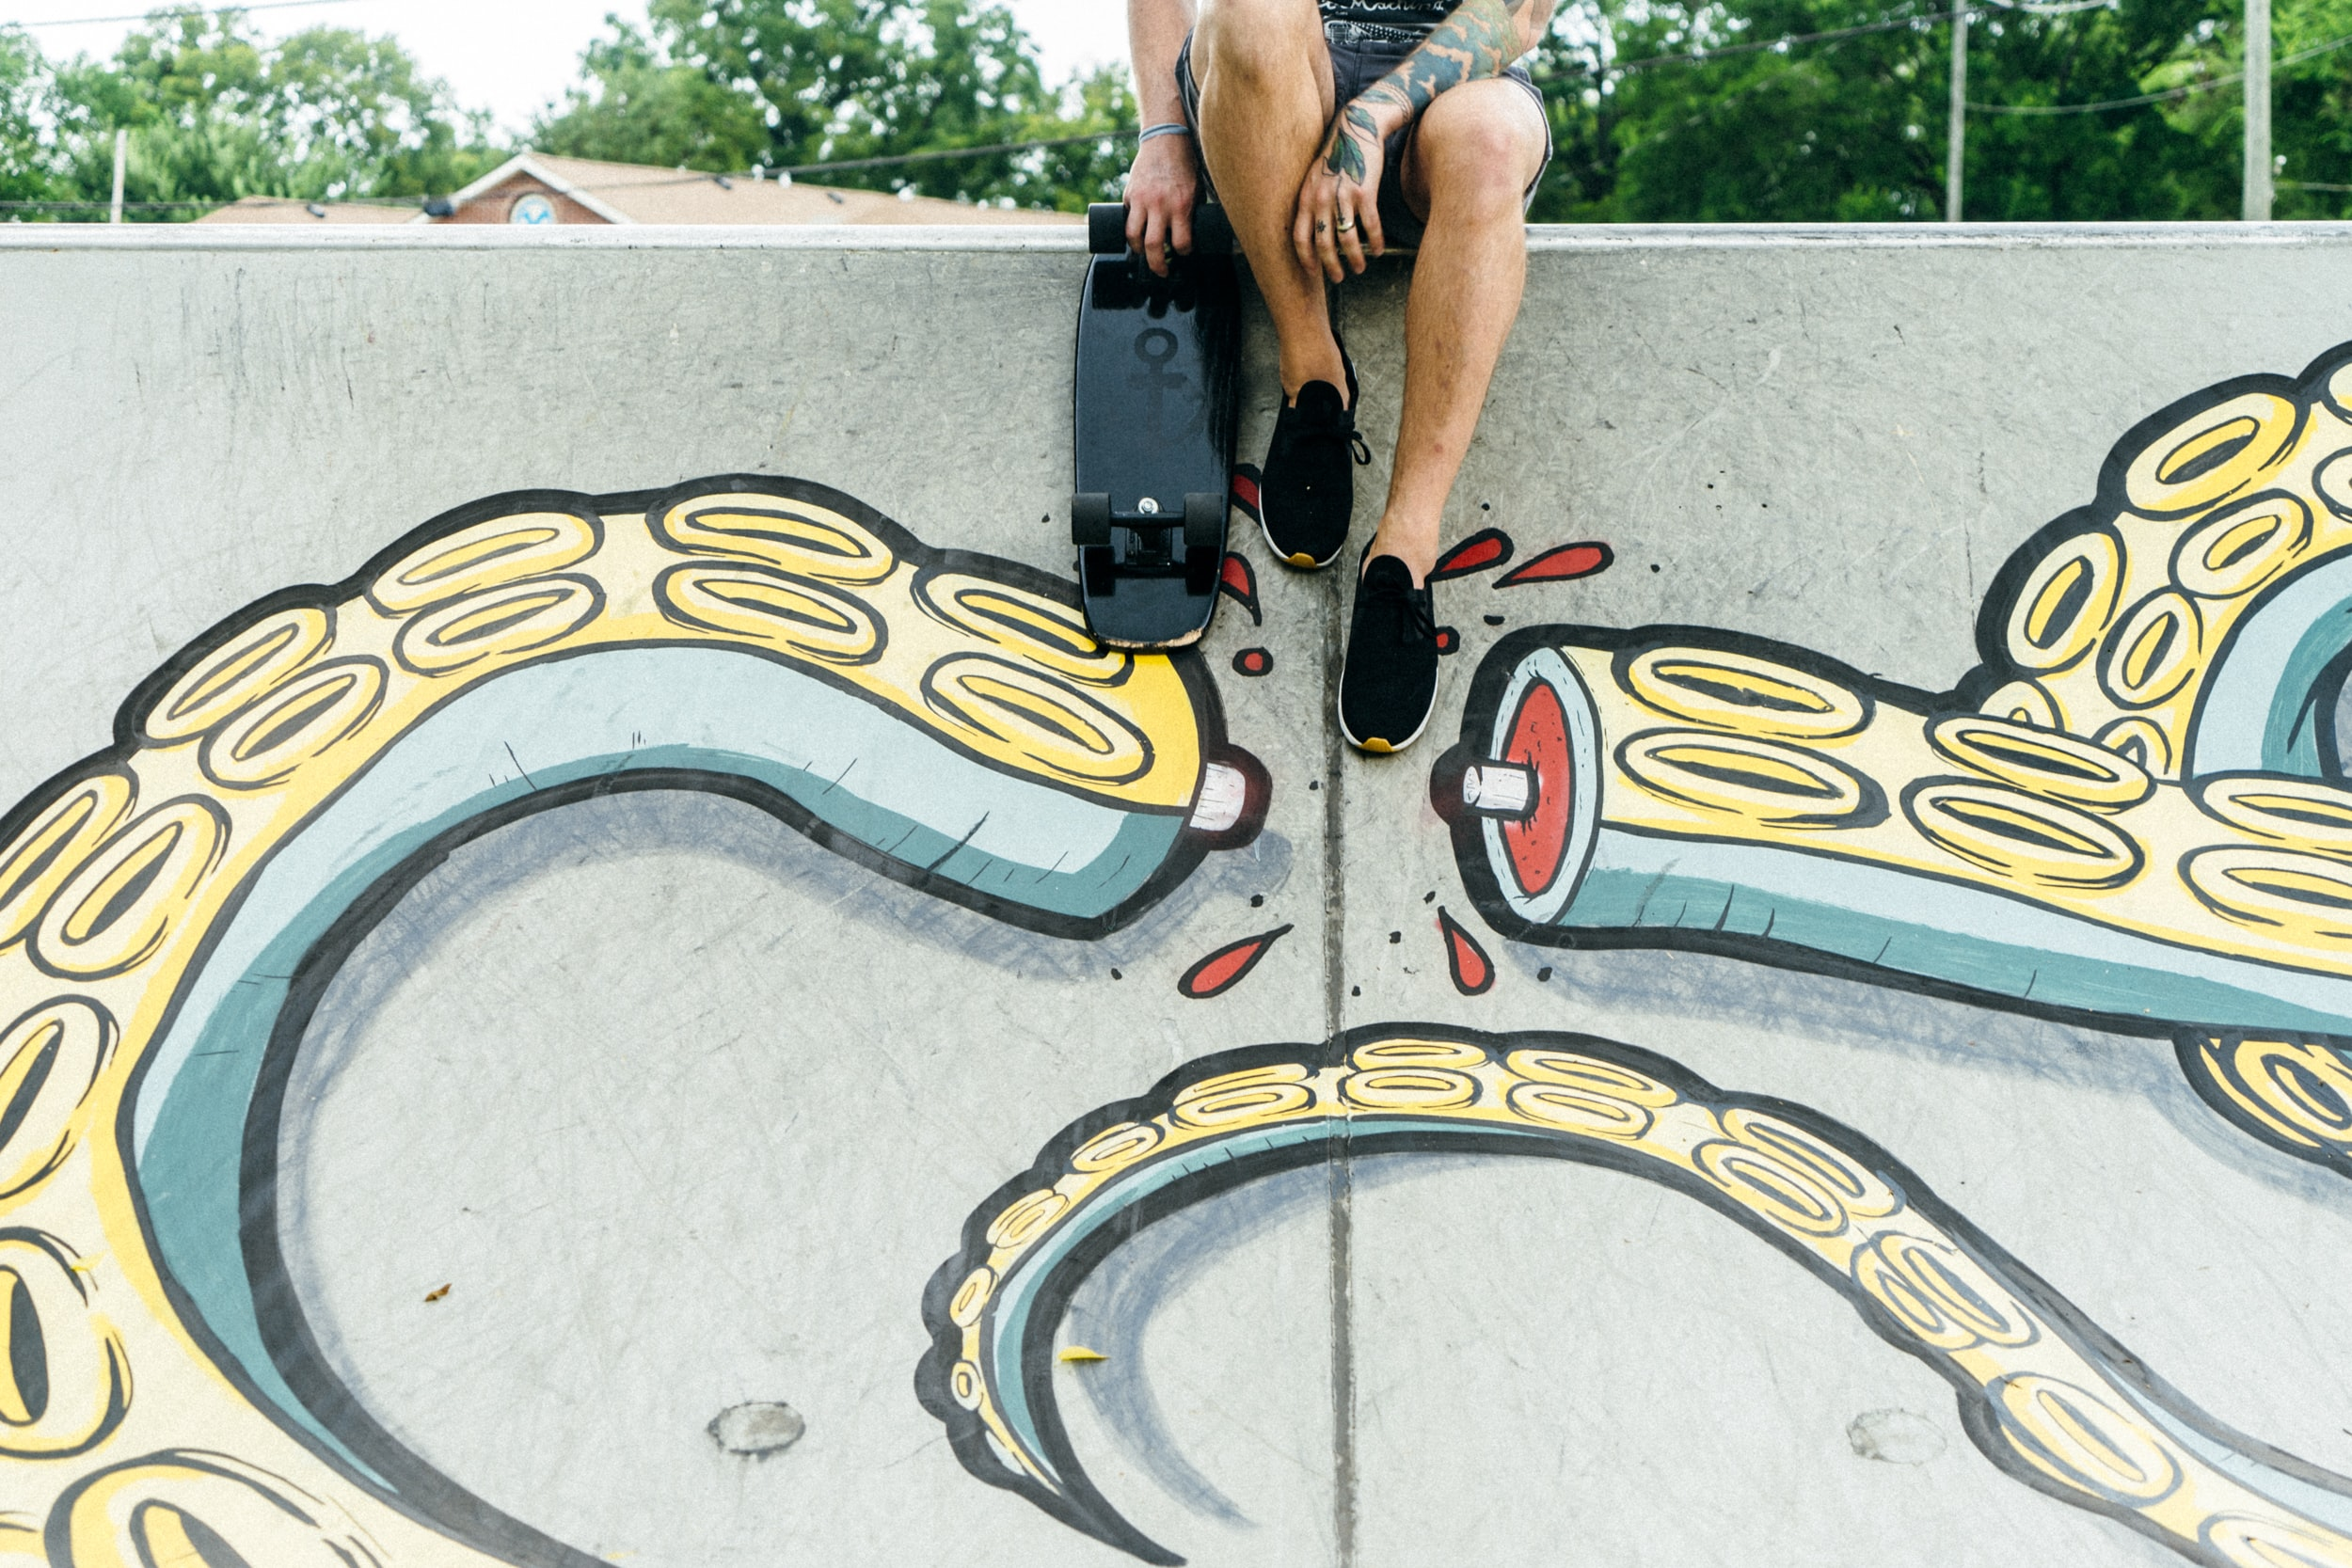 Skateboarder perched on a wall painted with graffiti of an octopus tentacle at Salemtown Board Co